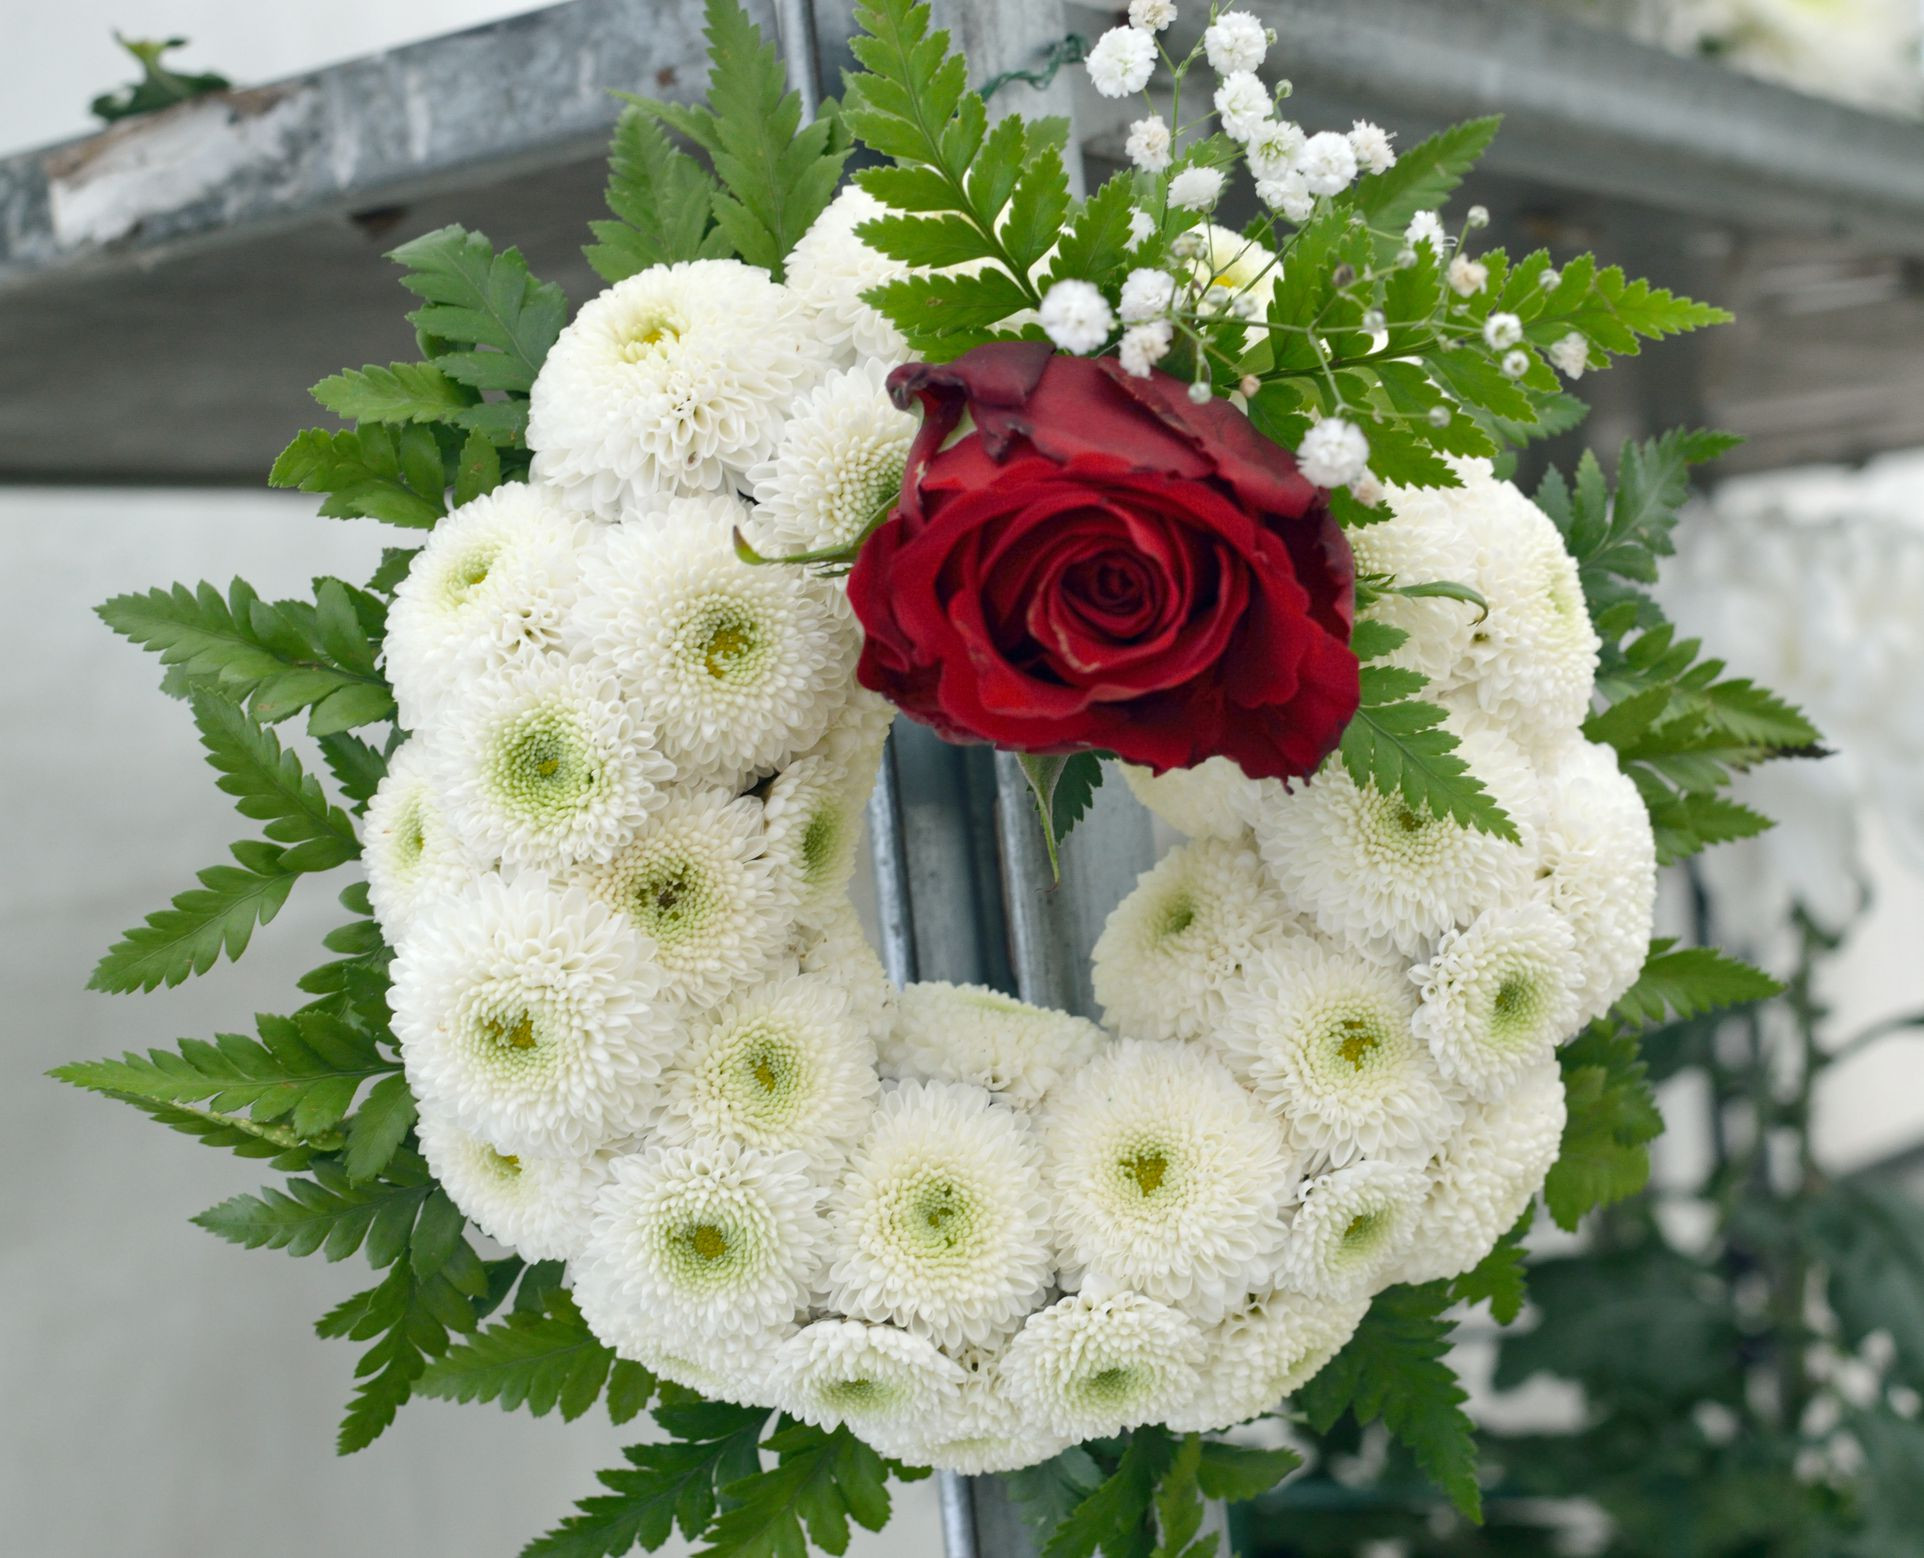 how to make cemetery vase flowers of proper etiquette for sending funeral flowers inside funeralwreath gettyimages 591655301 5a3edccc5b6e240037ffc773